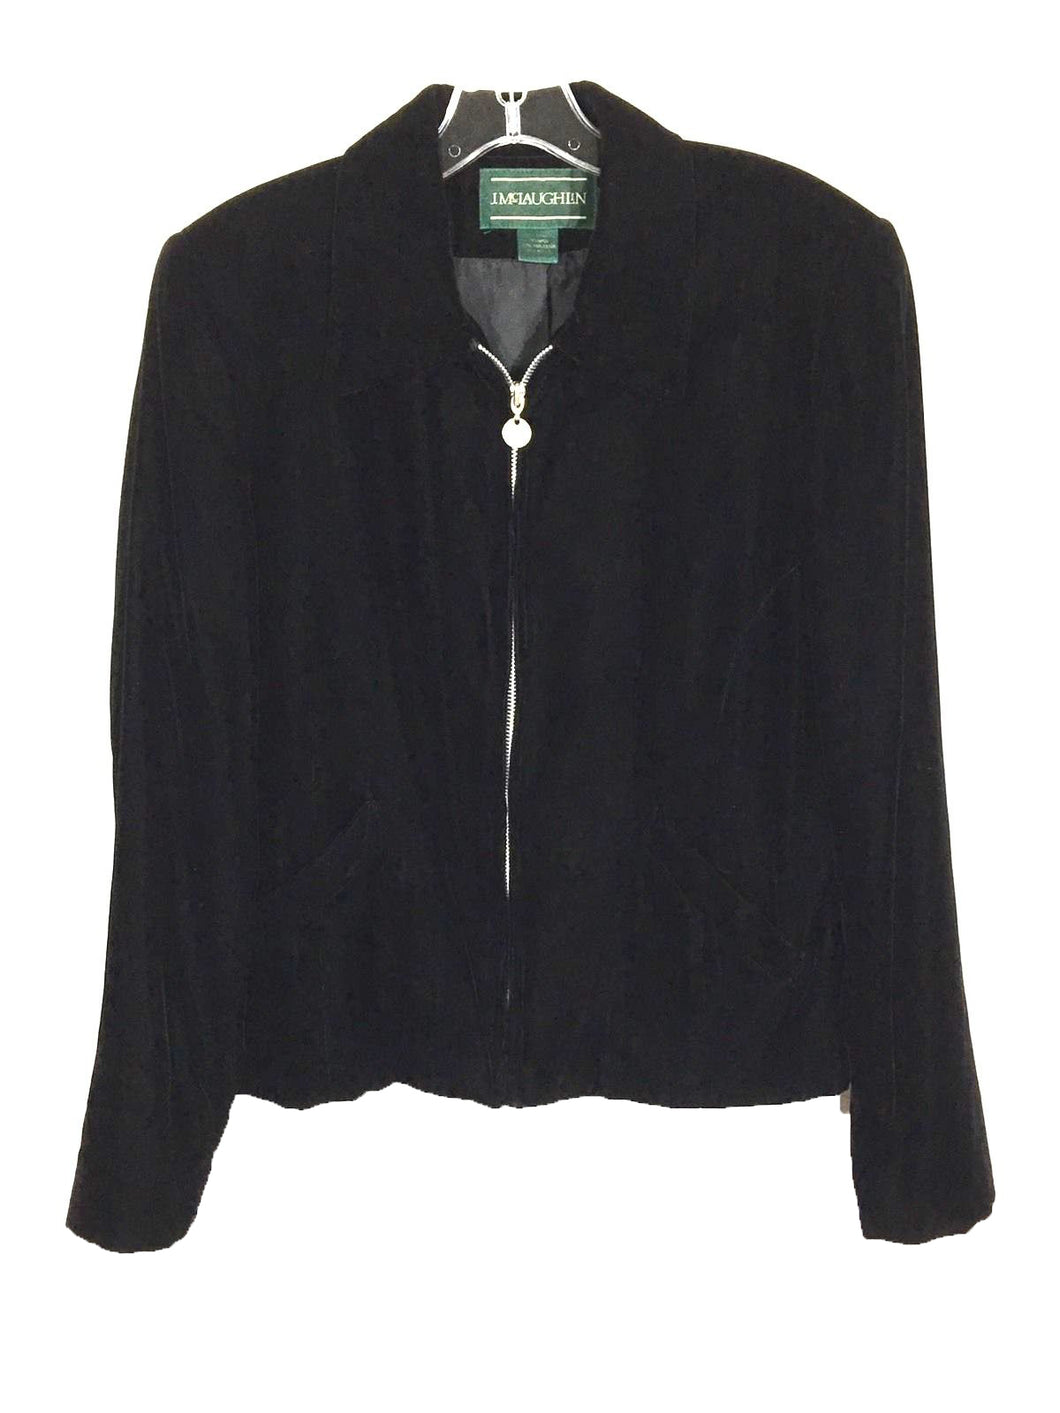 J. McLaughlin Black Velvet Full Zip Blazer Jacket Padded Shoulder Women's Size 8 - Preowned - FunkyCrap Boutique